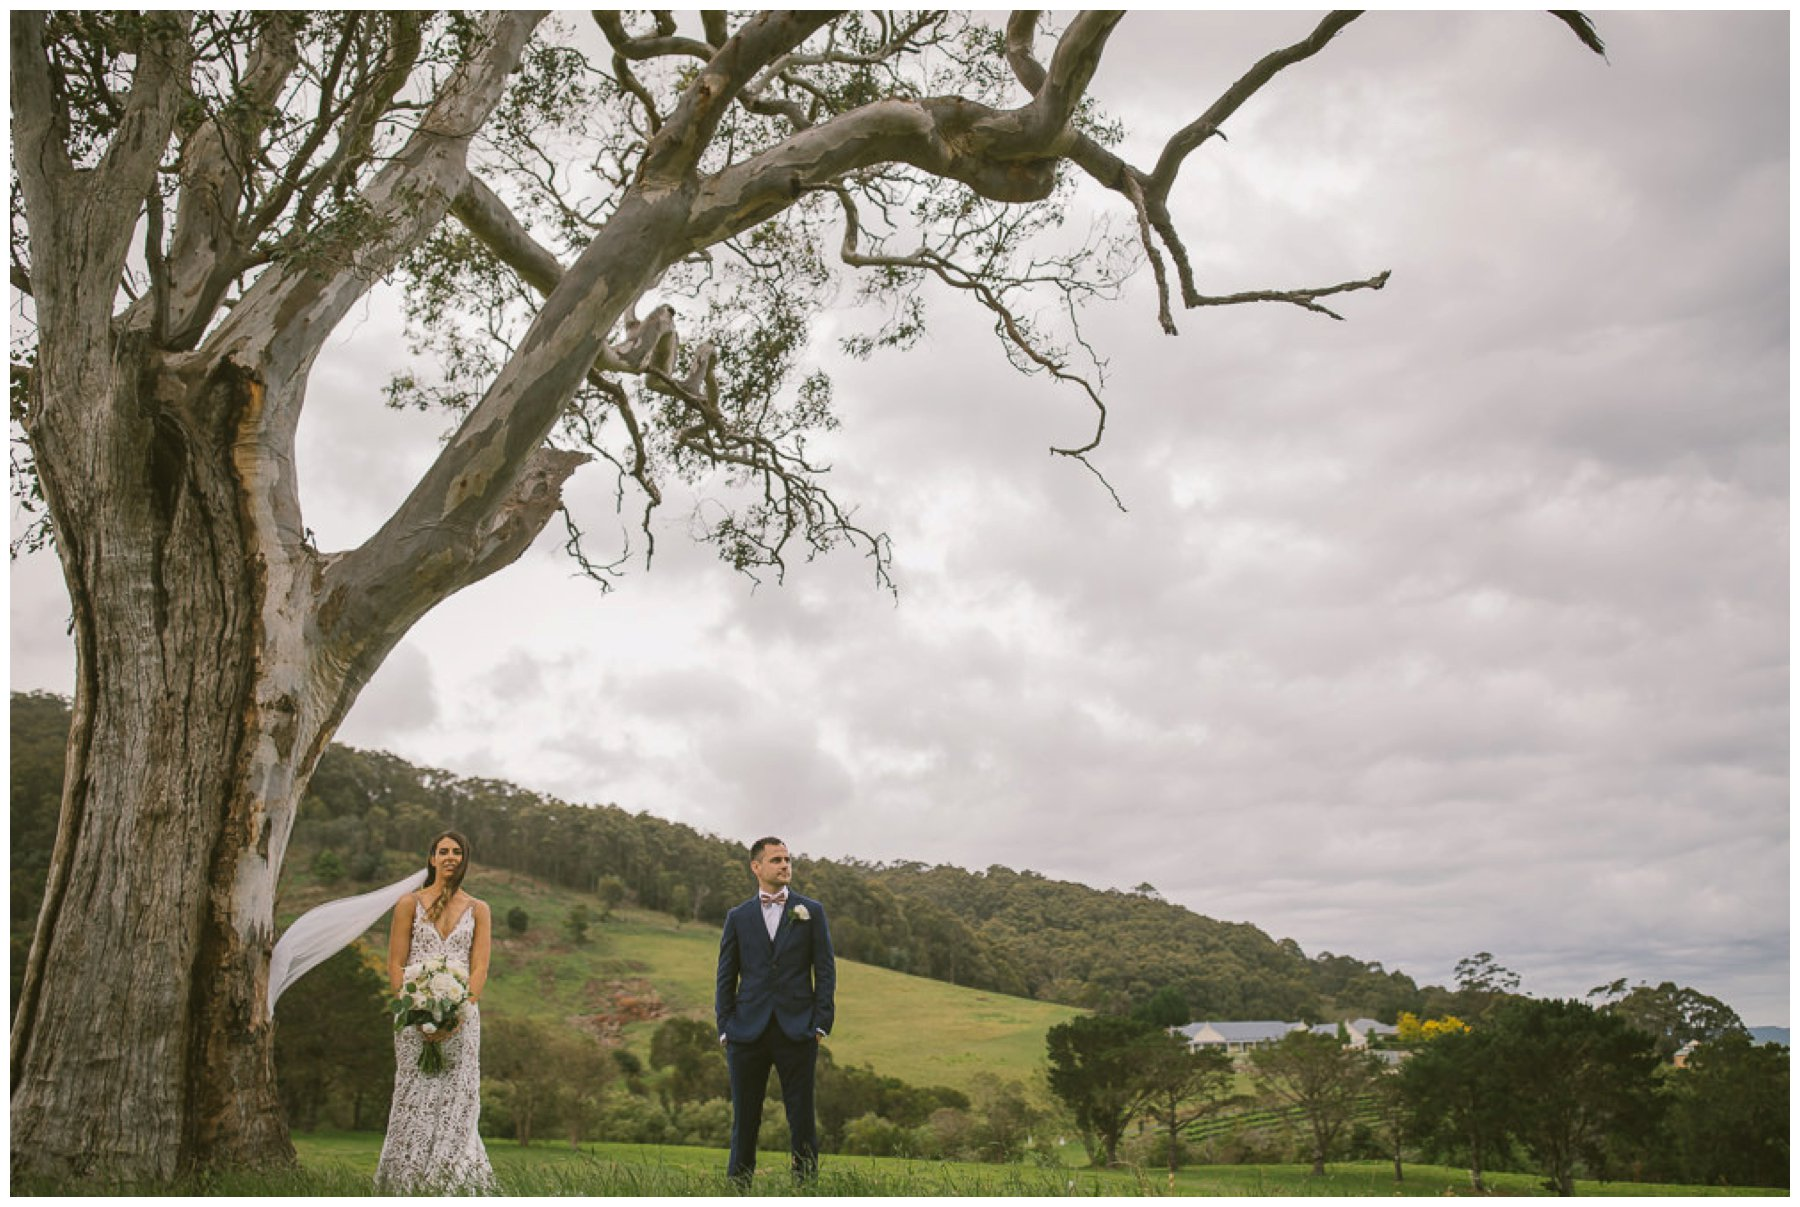 Patrick and Hollie, Coolangatta estate wedding, south coast wedding photographer, Southern Highlands wedding photographer, southern highlands photographer, gum tree, native wedding